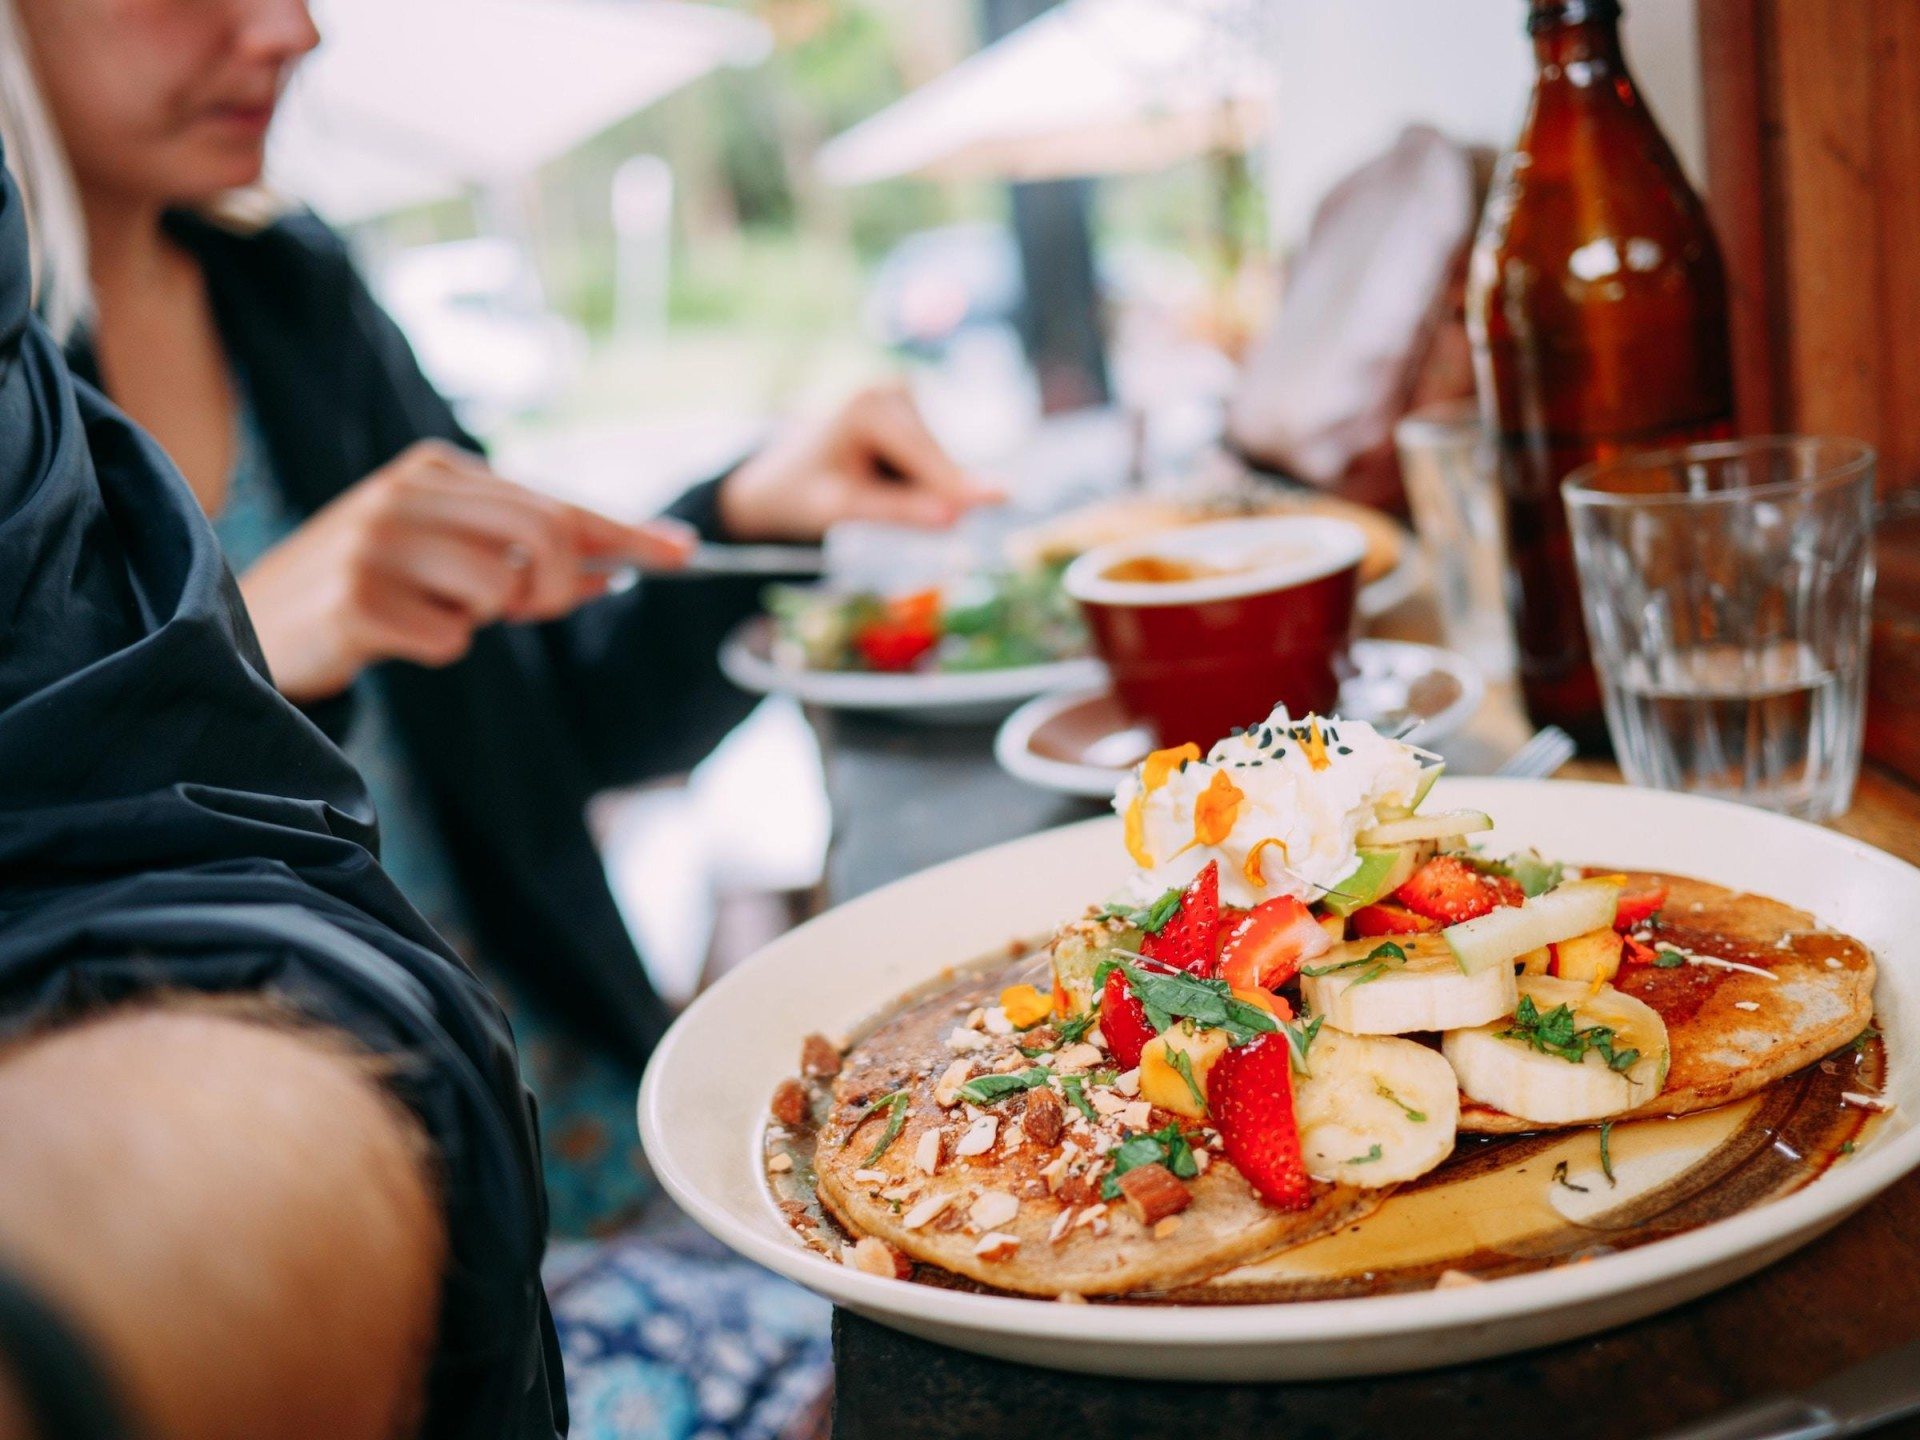 Licensed Cafe and Bar for Sale in Cronulla - Weekly Sales $12,000 CF